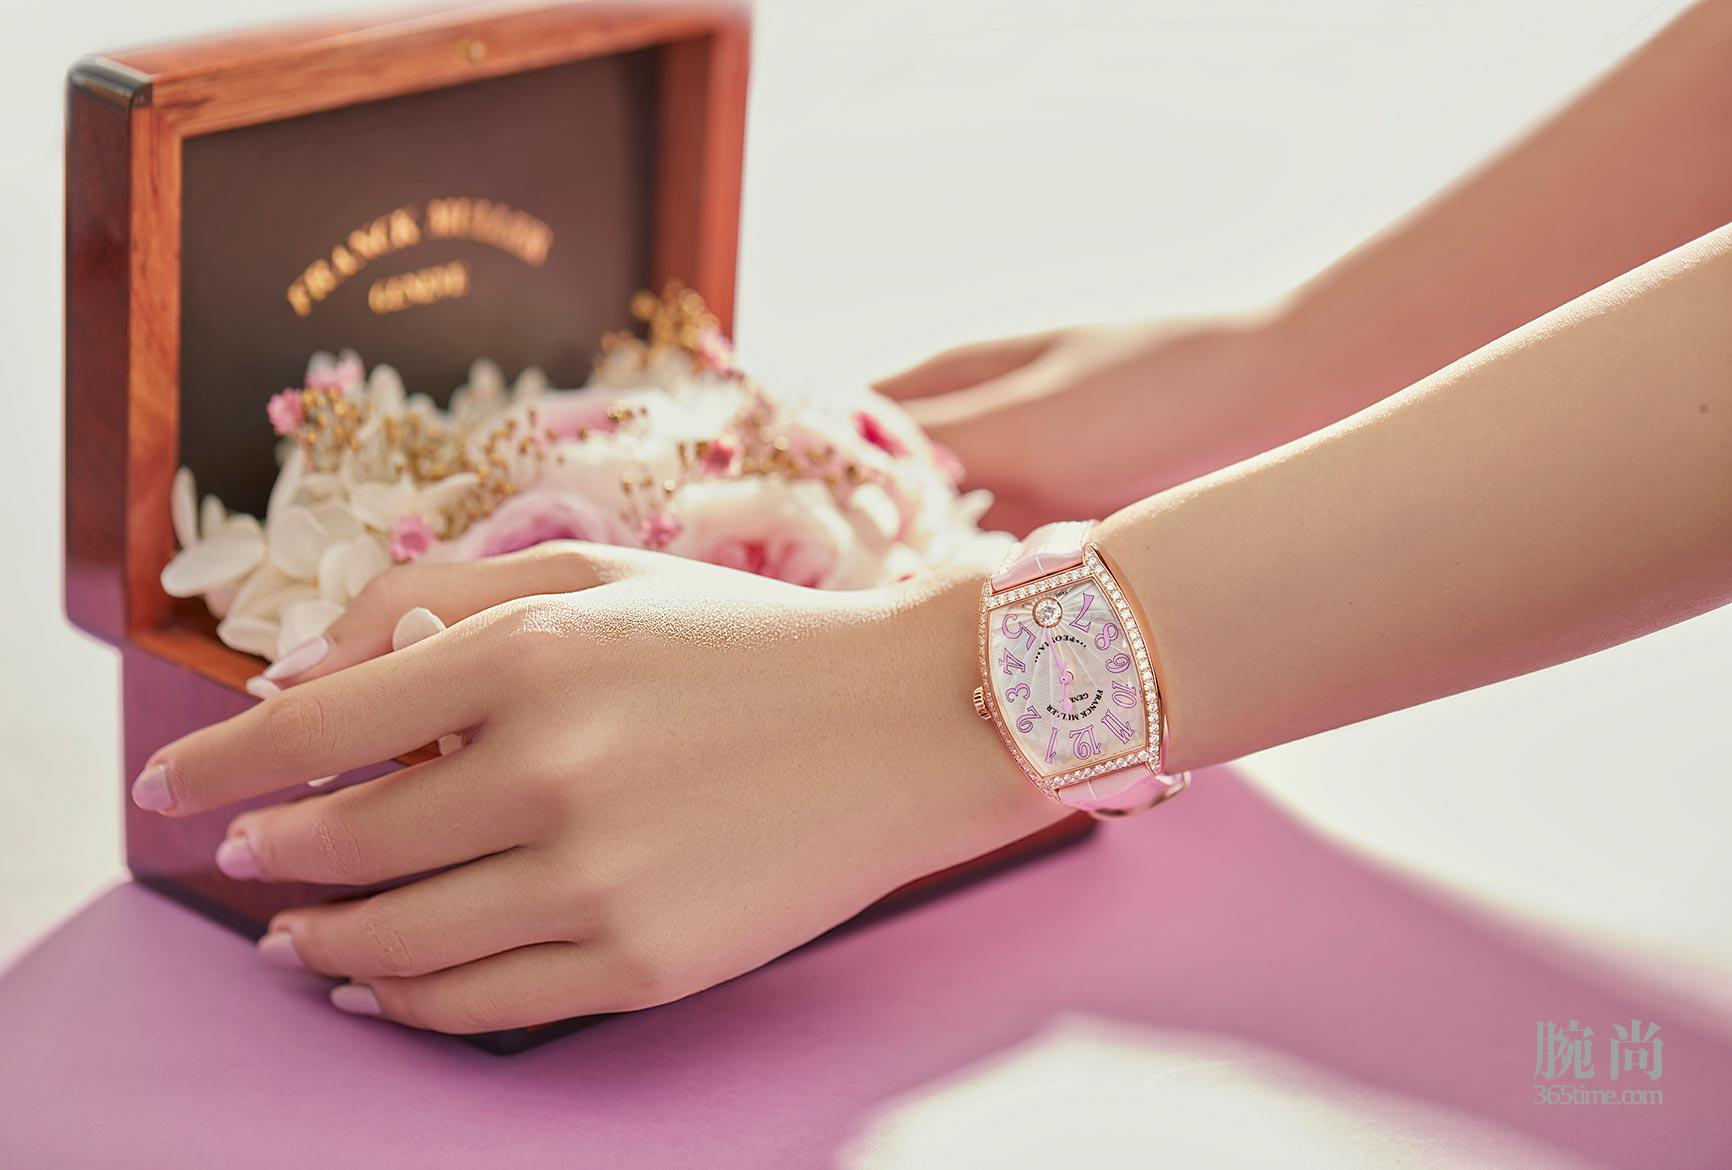 Cintree-Curvex-Peonia-Diamond-Limited-Edition-in-Rose-Gold-with-diamonds_3_ls.jpg